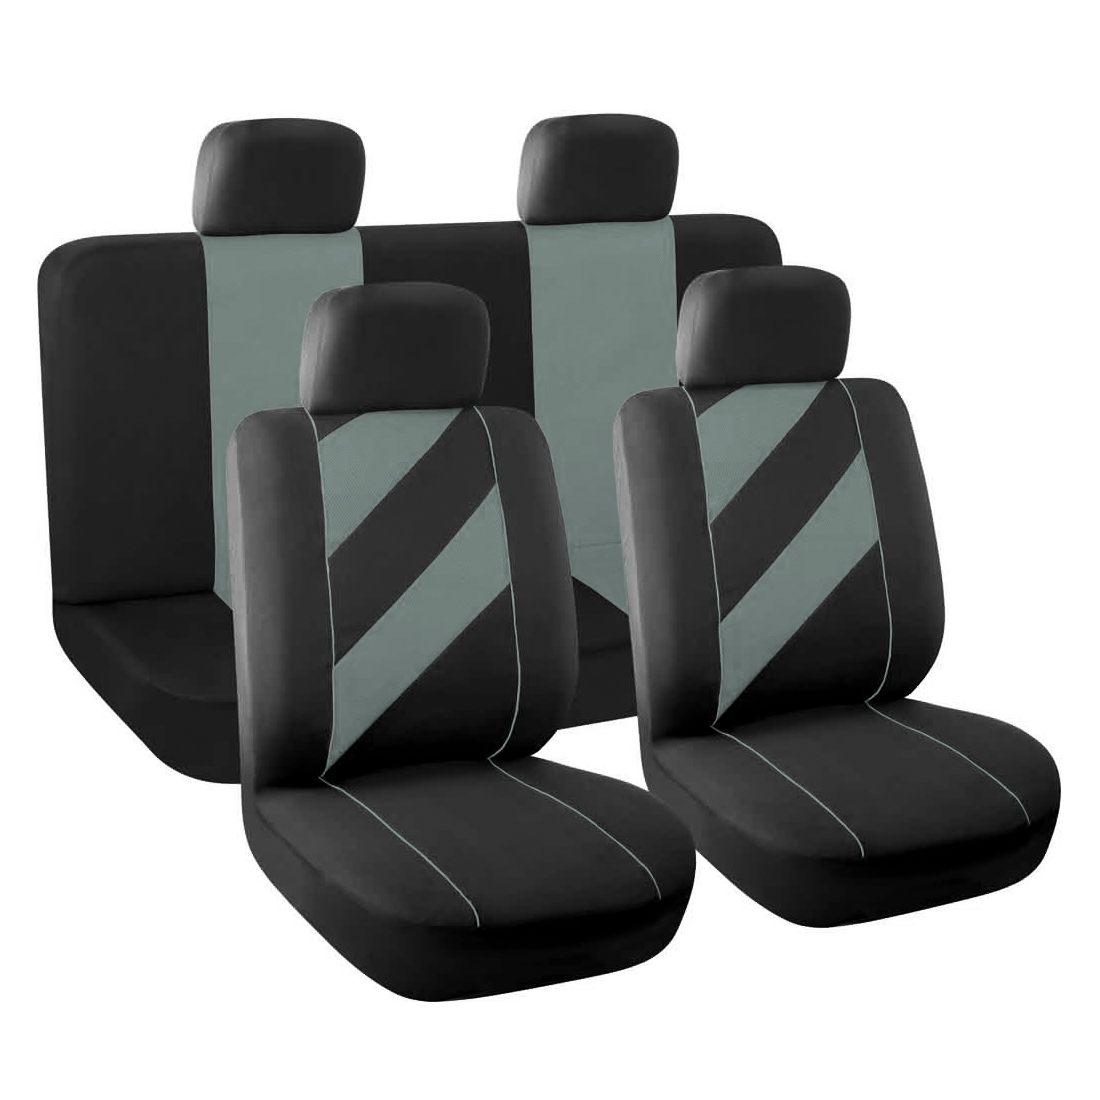 8 Piece x Unique Flat Cloth Auto Car Seat Cover Headrests Full set Gray Black